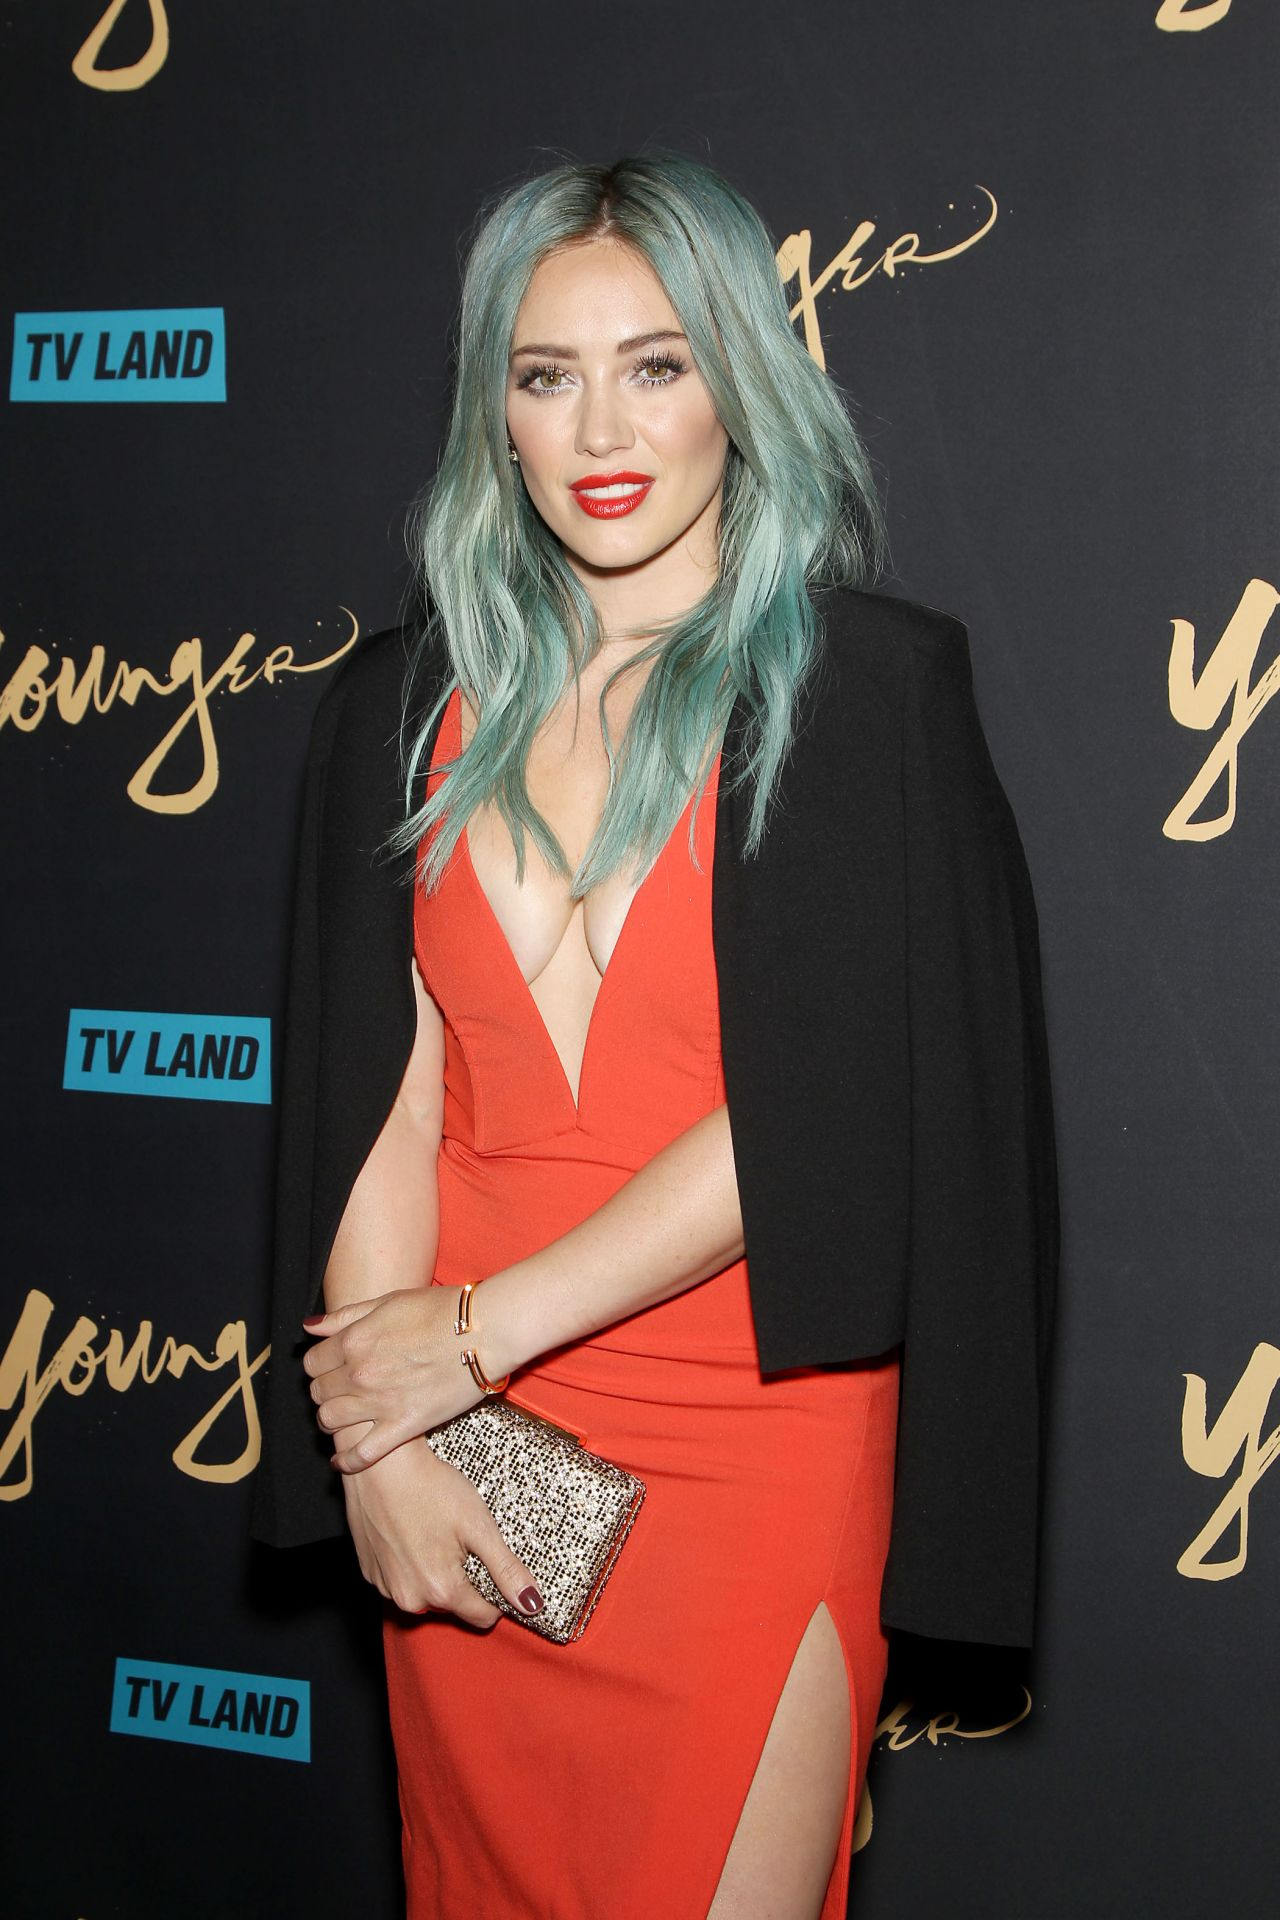 Hilary Duff  TV Lands Younger Premiere in New York City